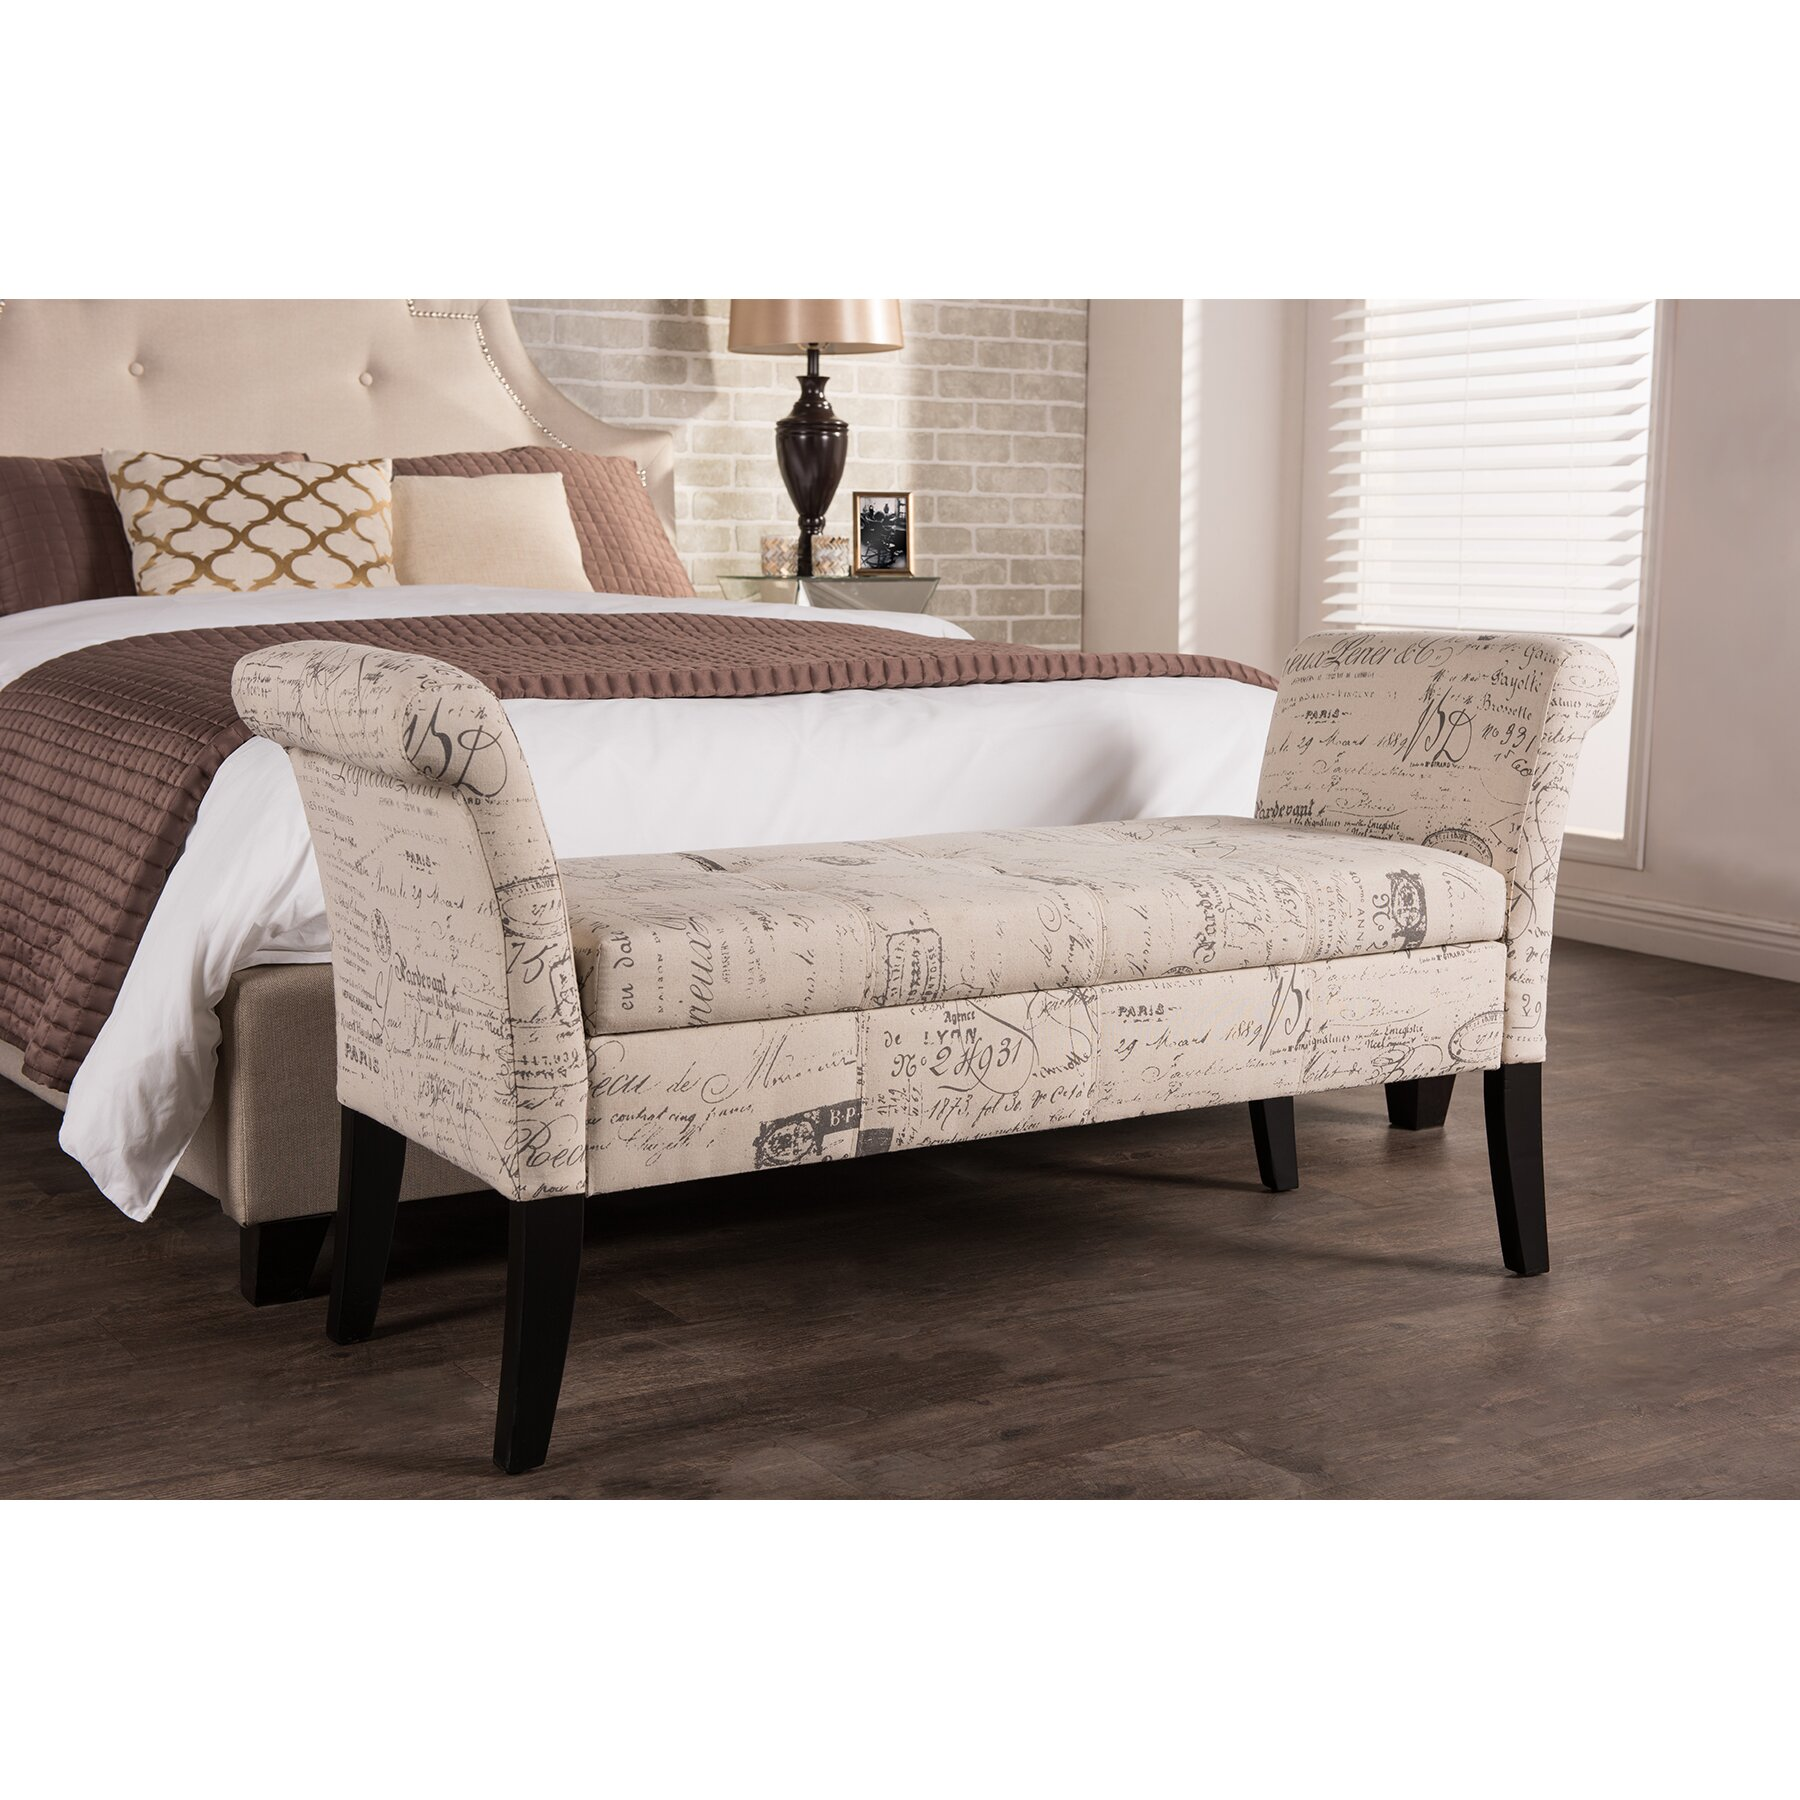 Wholesale Interiors Baxton Studio Upholstered Storage Bedroom Bench Reviews Wayfair